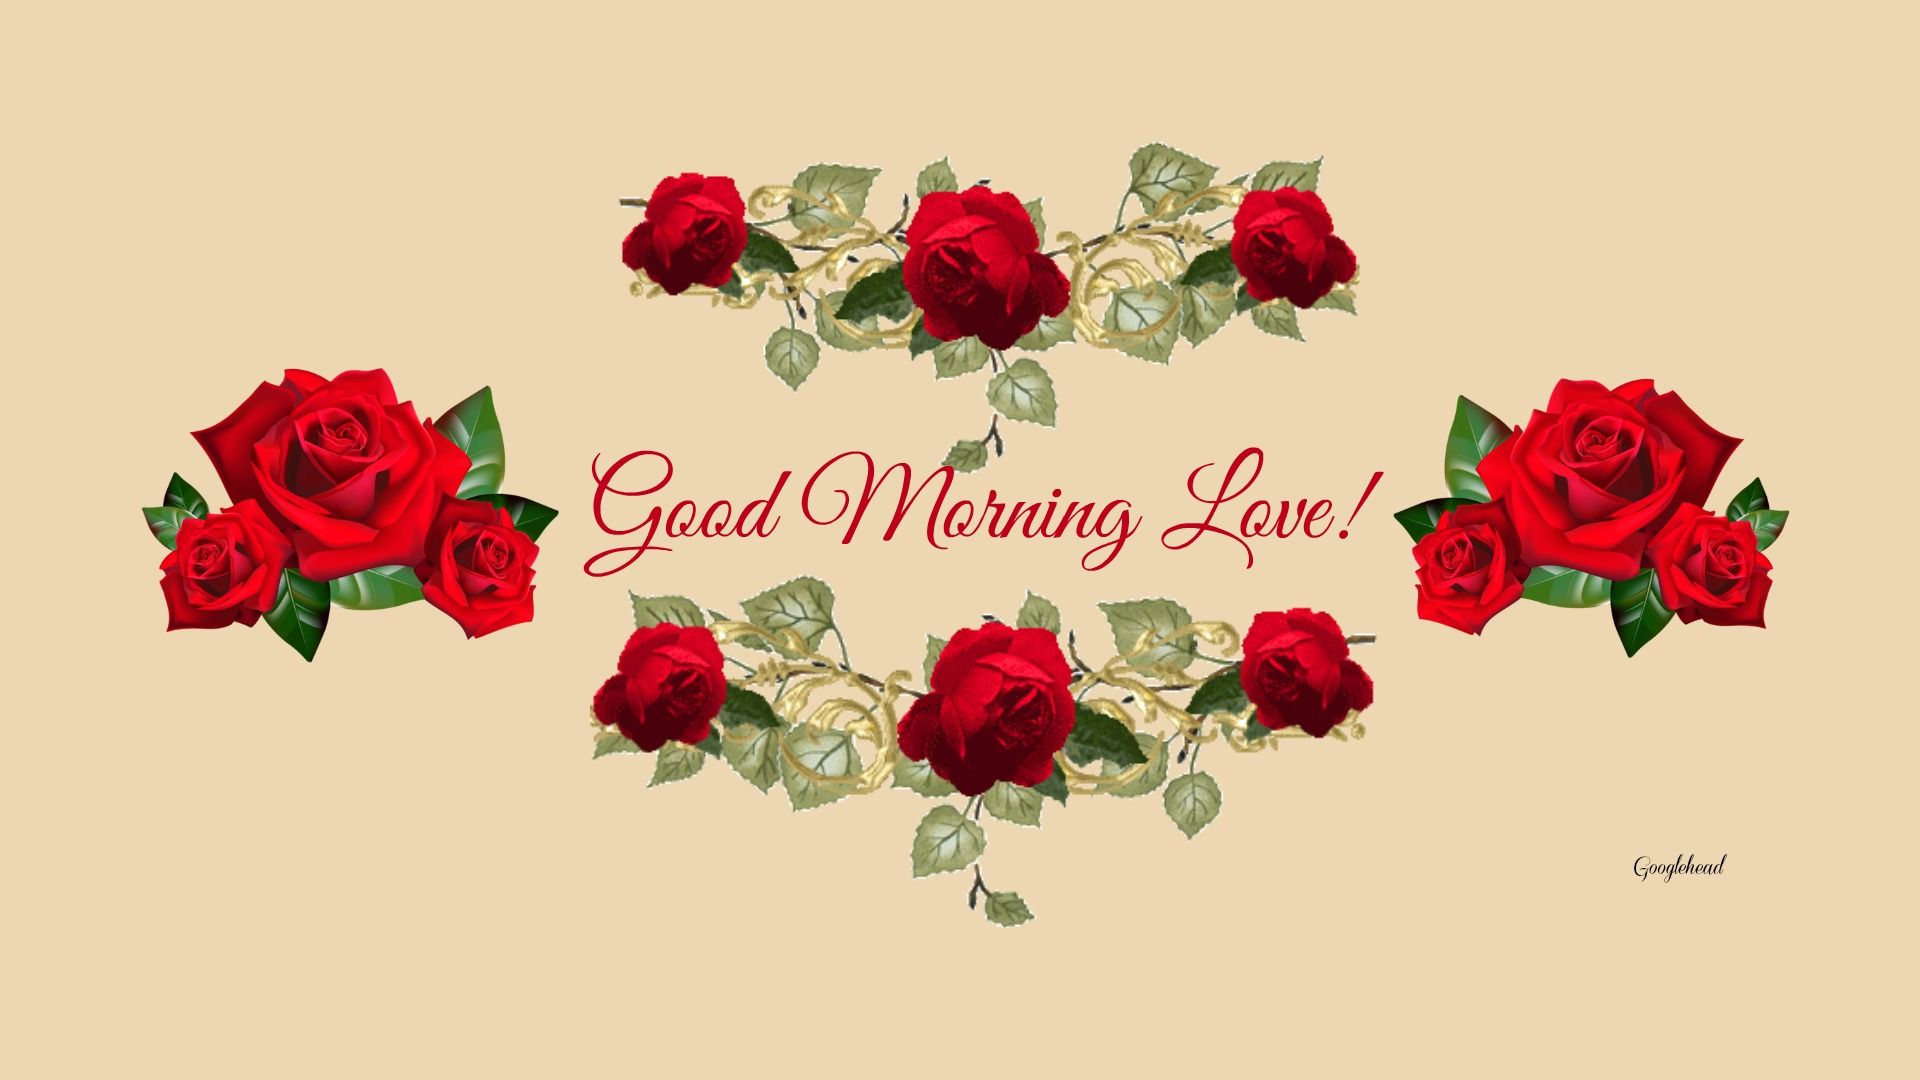 good morning love hd wallpaper hd latest wallpapers